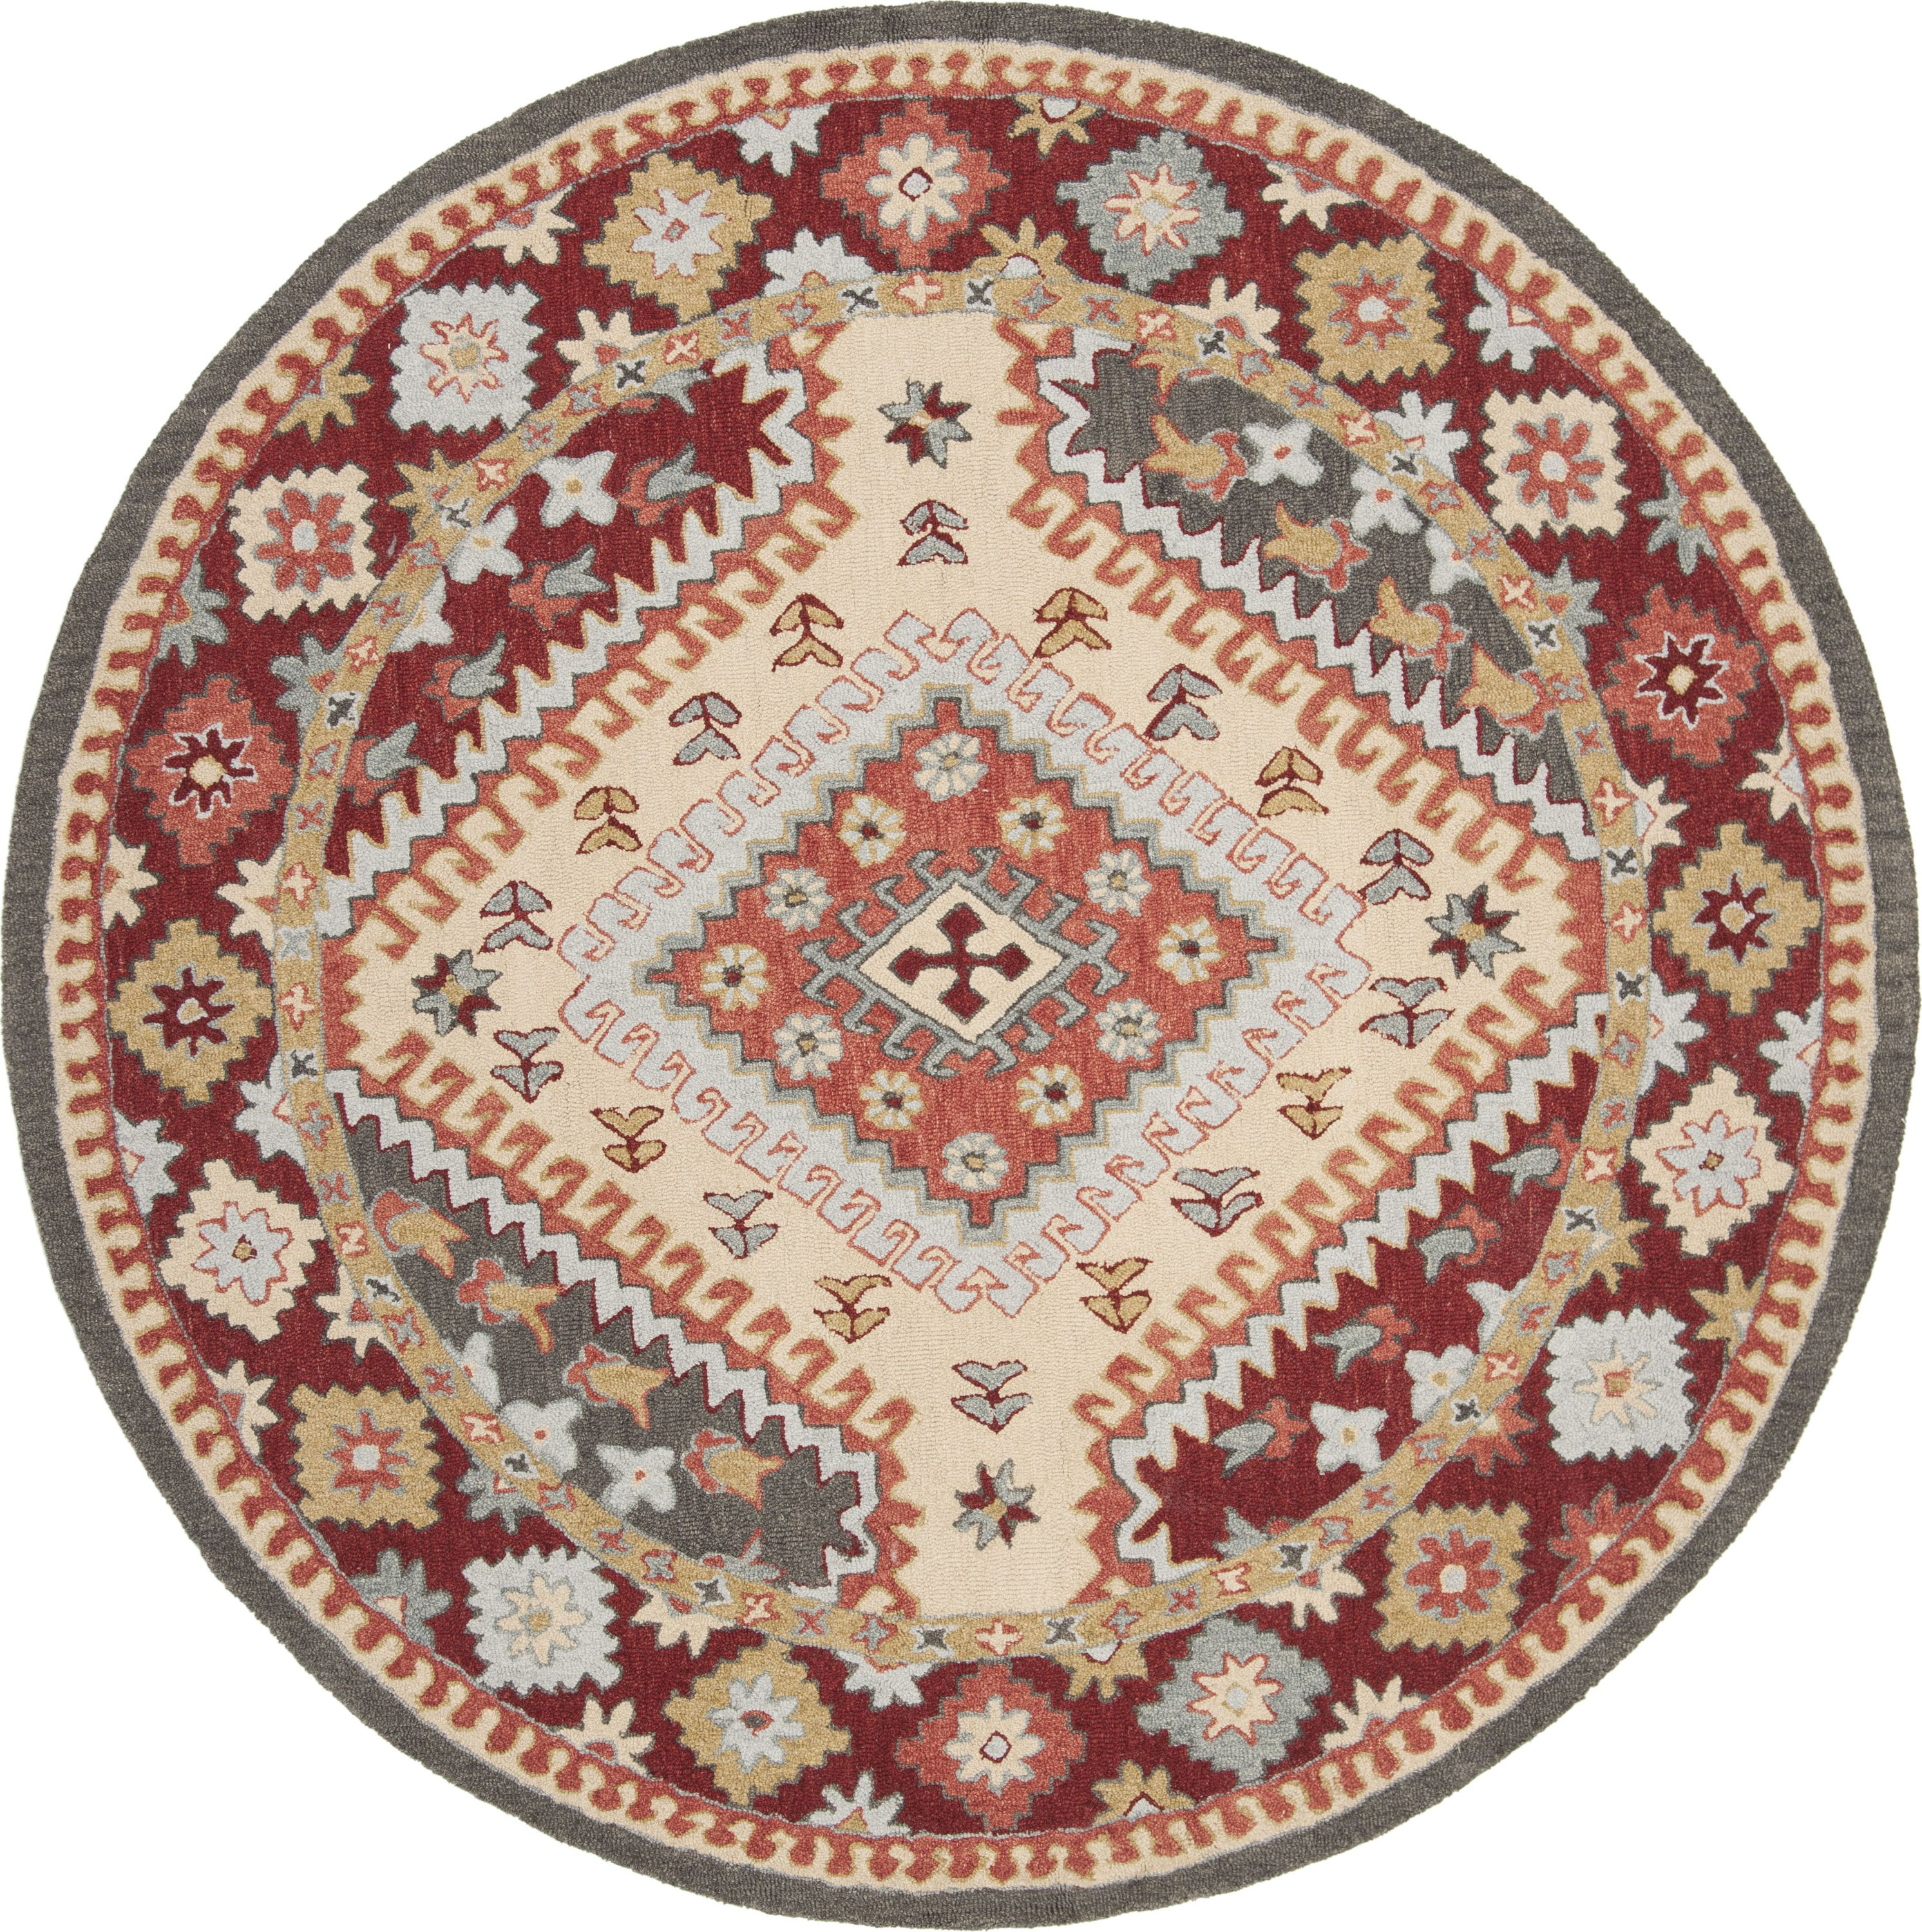 Apn801q Color Red Ivory Size 2 3 X 7 Southwestern Area